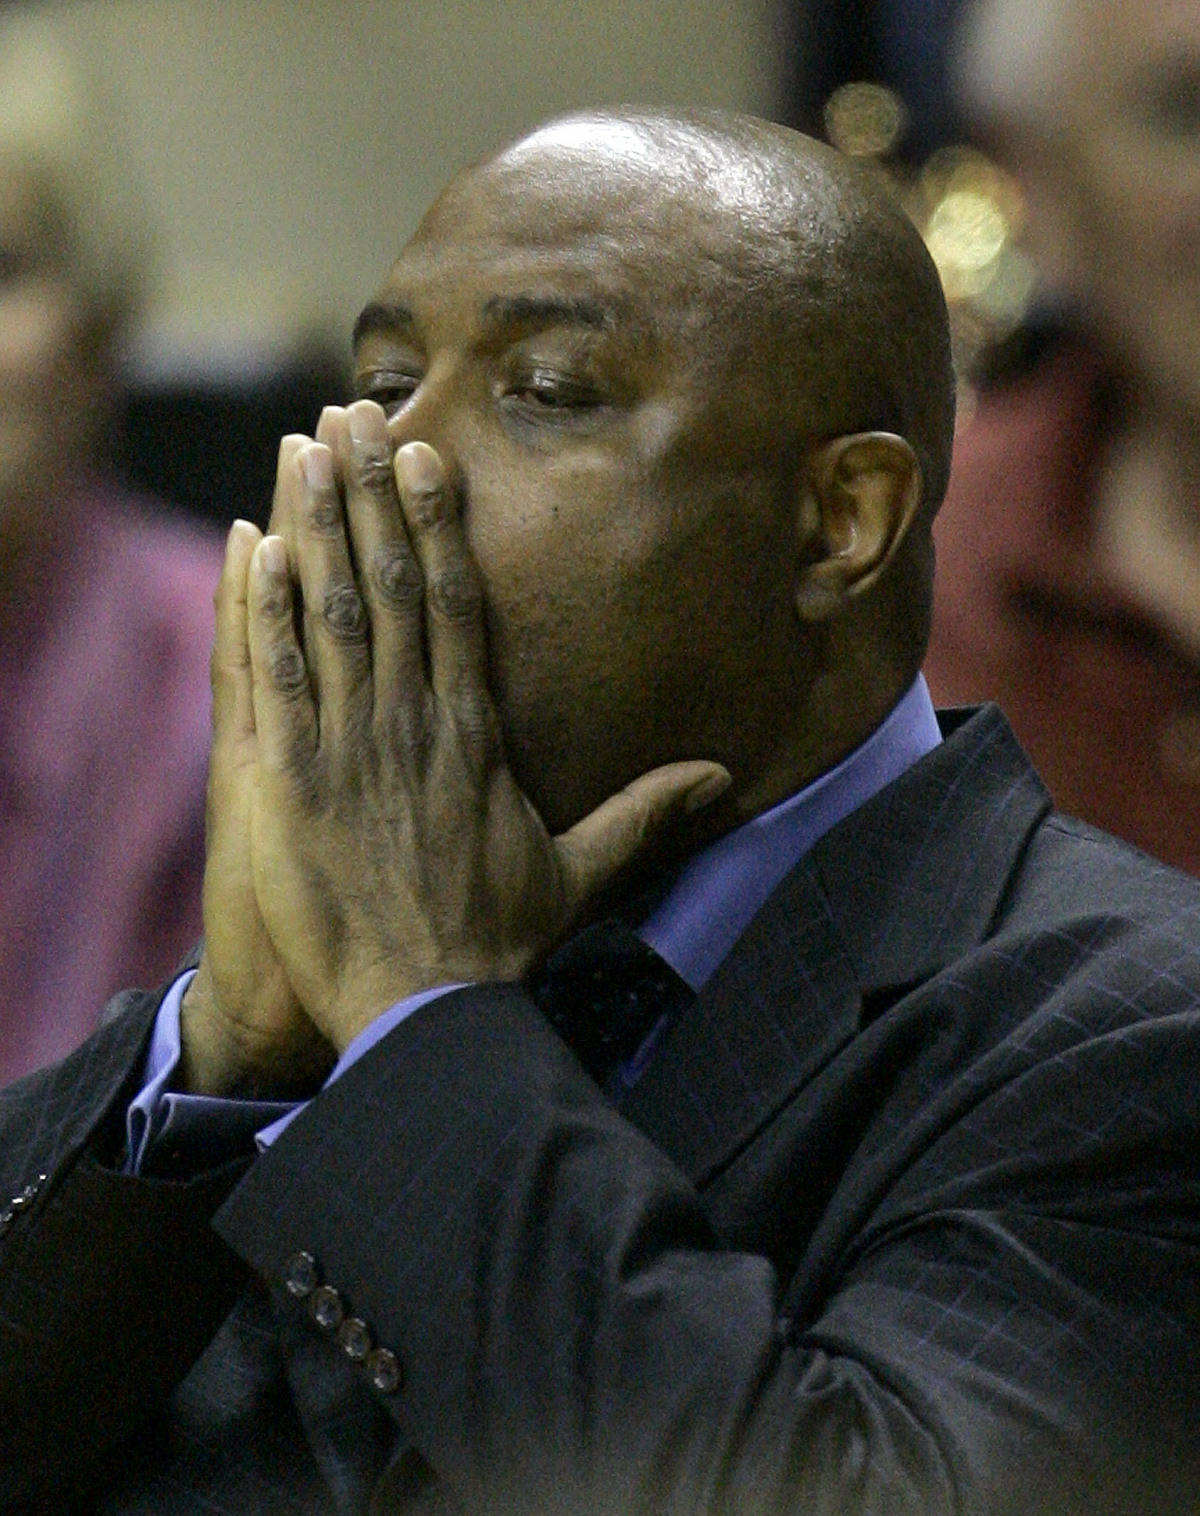 Florida State coach Leonard Hamilton watches a basketball game with Boston College, Sunday, Feb. 11, 2007, in Tallahassee, Fla. Boston College won 68-67. (AP Photo/Phil Coale)